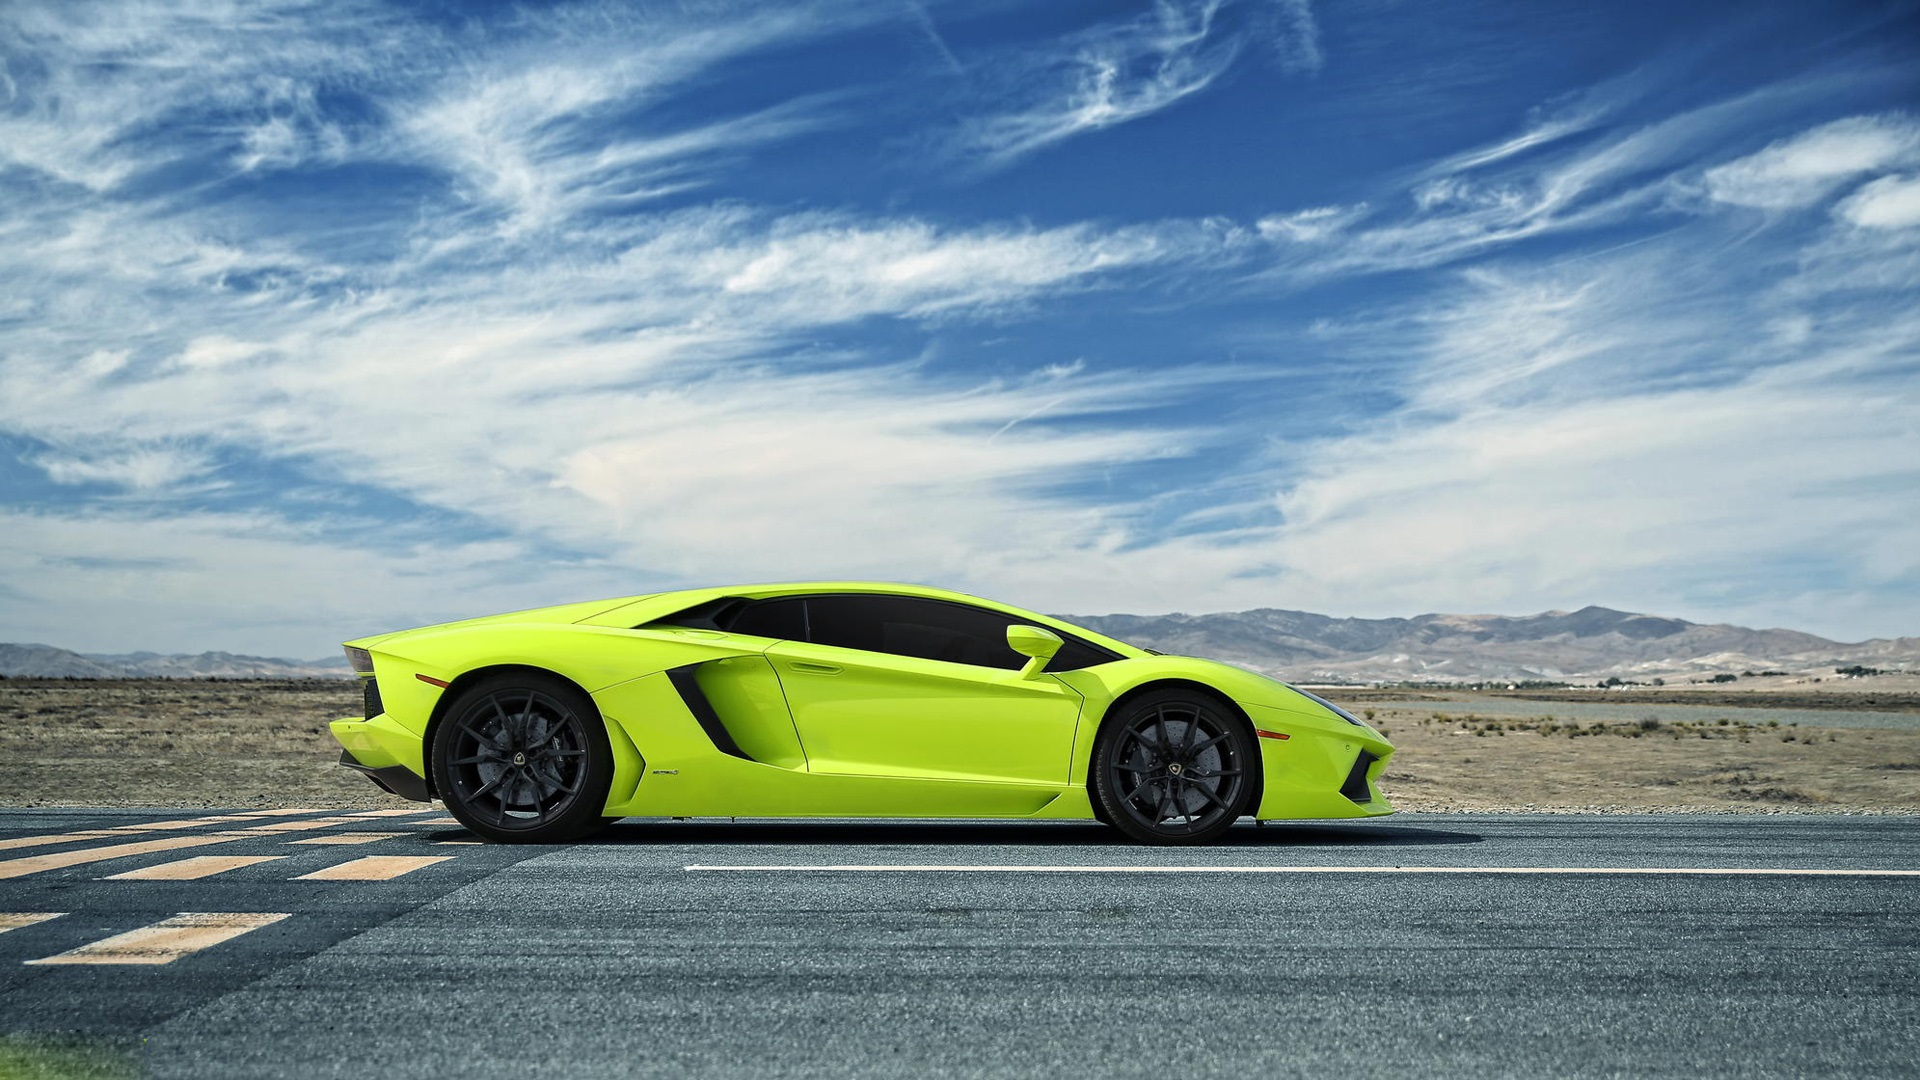 Wallpaper Lamborghini Aventador Green Supercar Side View 1920x1080